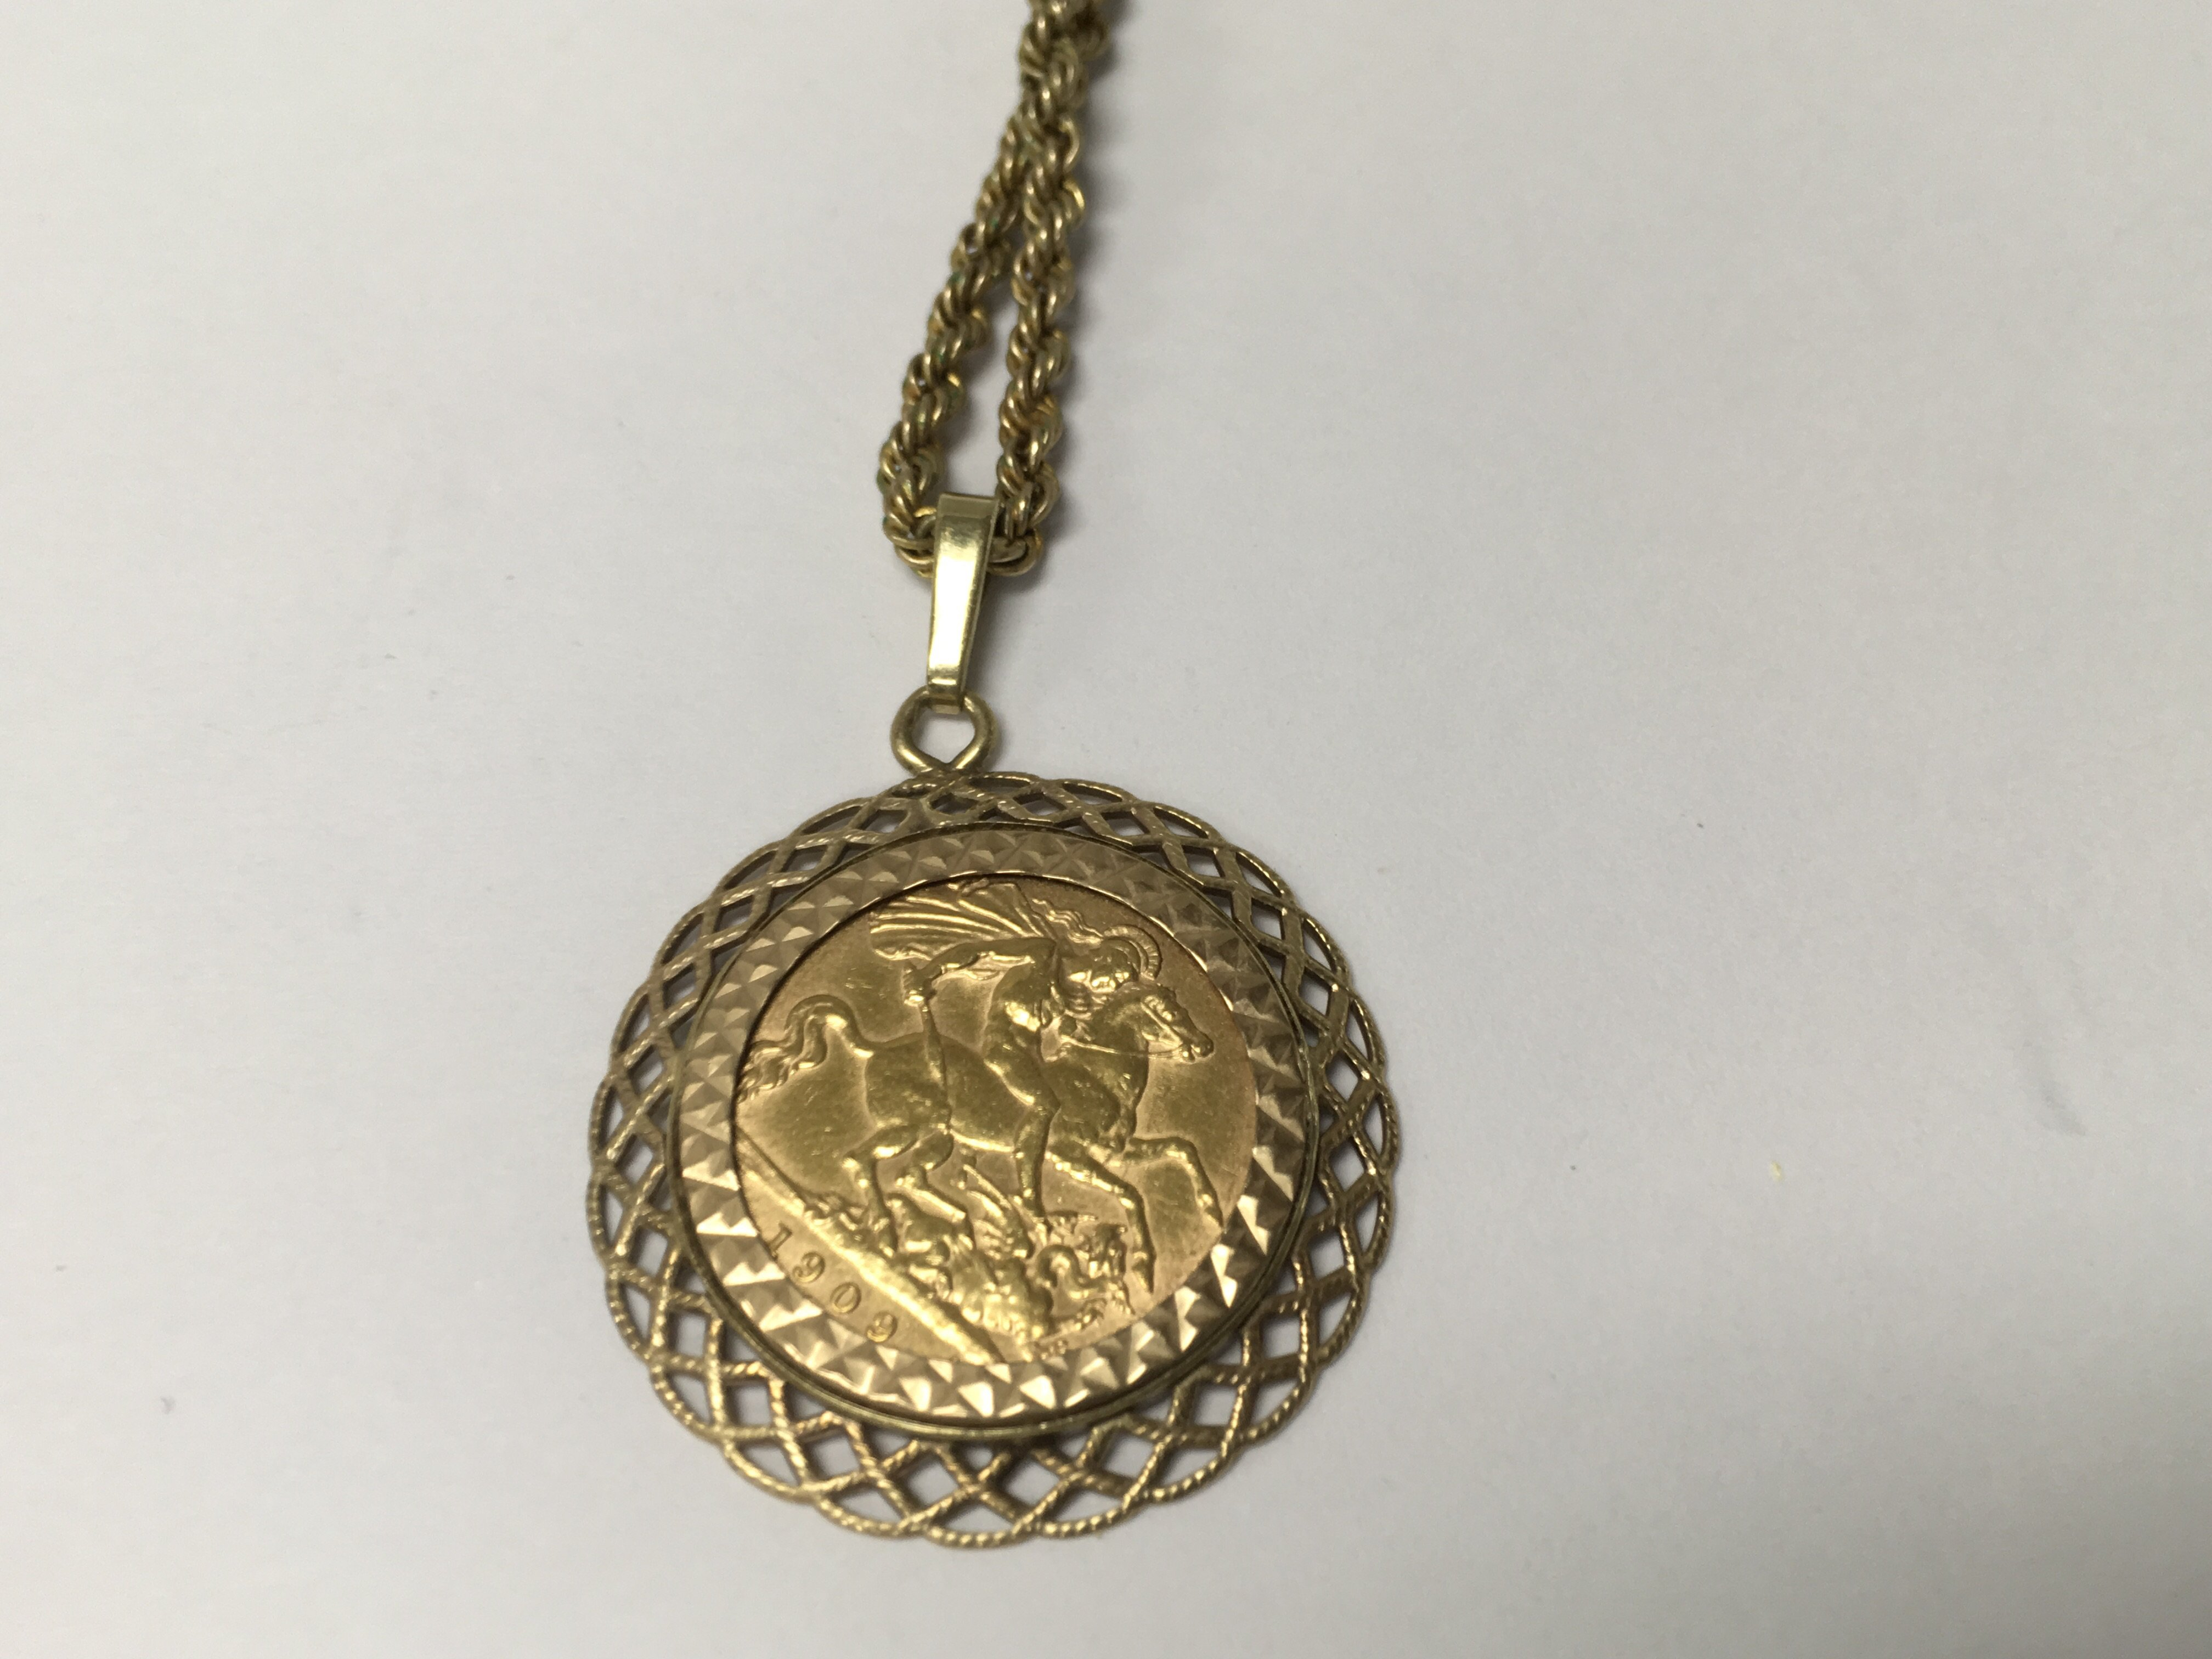 Lot 412 - A 1909 half sovereign in mount with attached chain